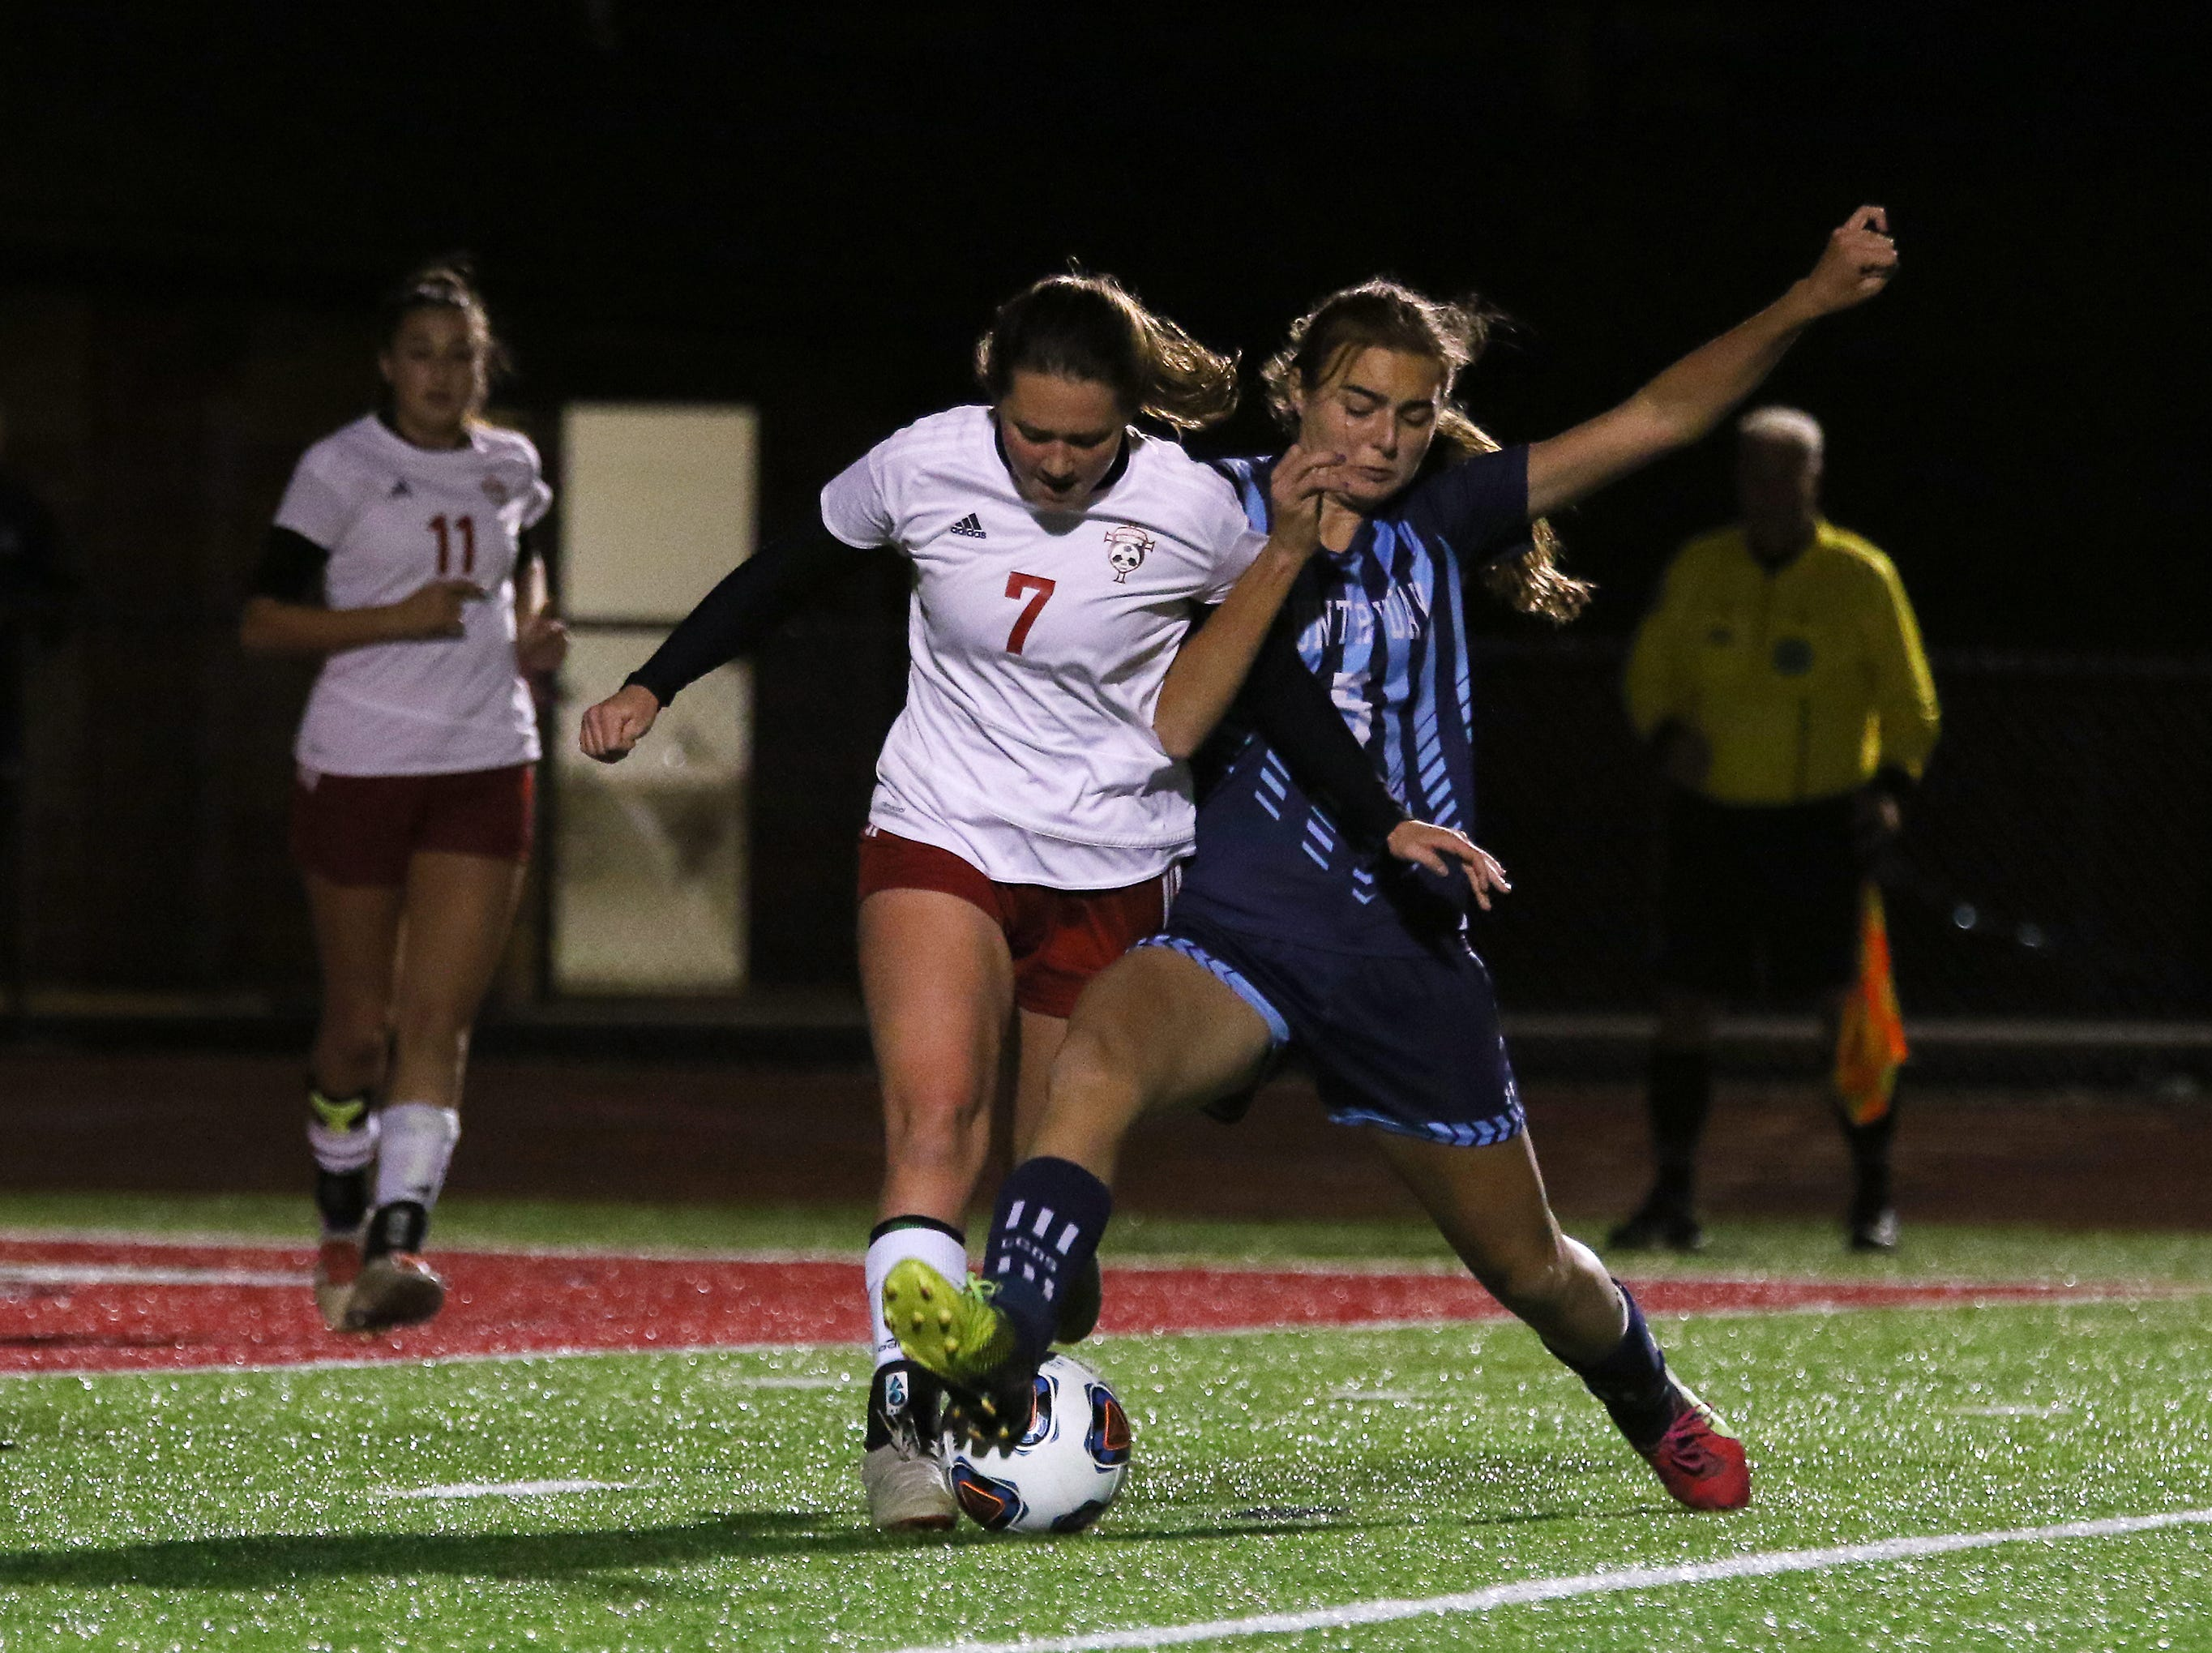 Rosecrans' Allie Berry battles for the ball against CCD in the Division III state semifinals at London High School on Tuesday.